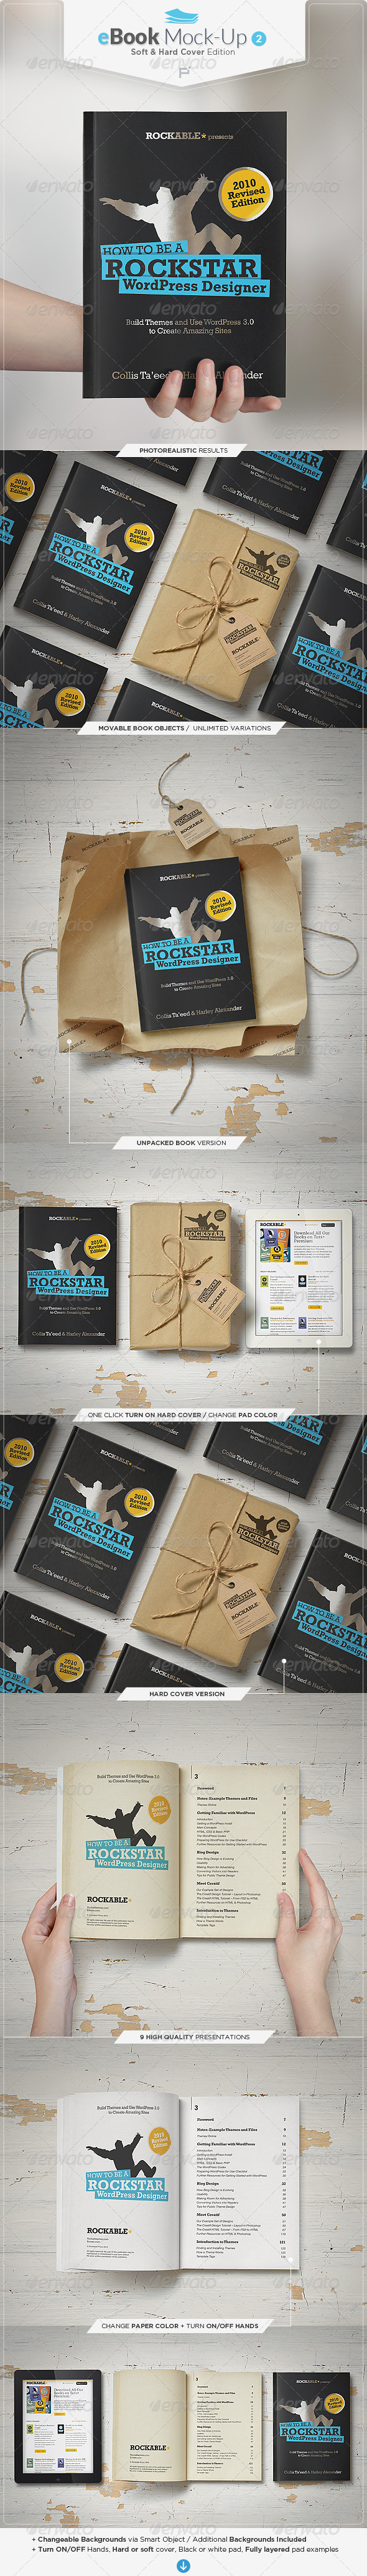 eBook Mock-Up Set 2 / Soft & Hard Cover Edition - Books Print